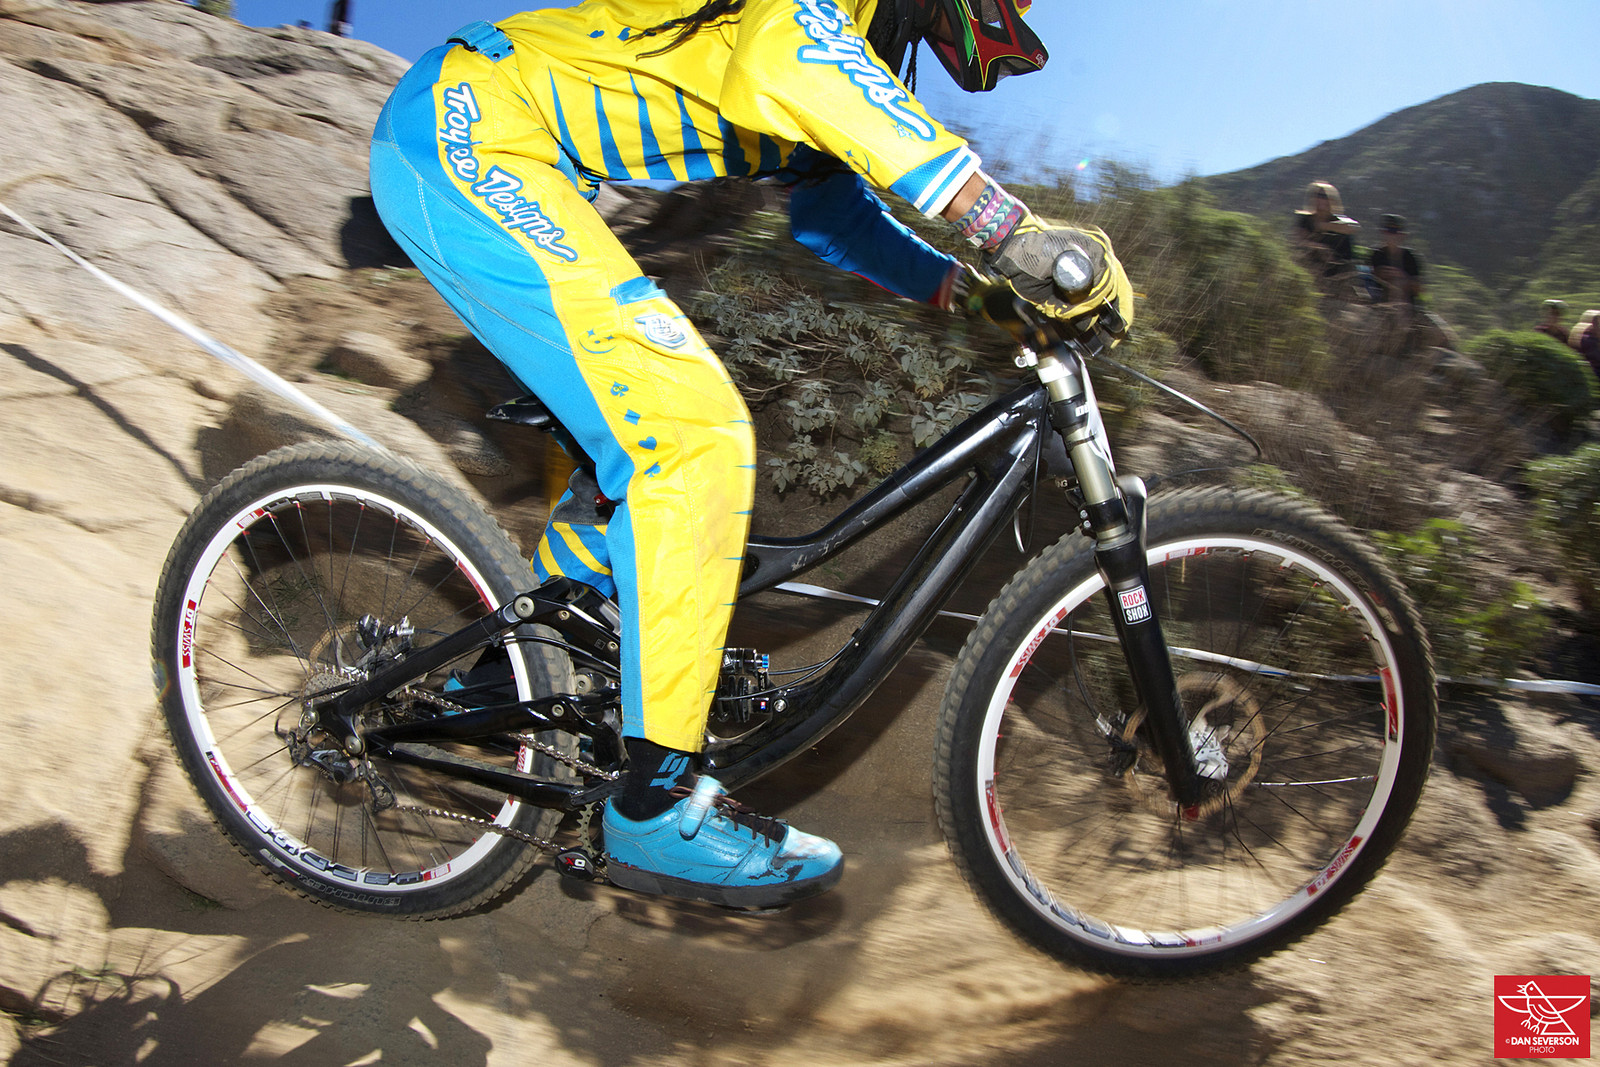 G-Out Project: Fontana 2015 - Specialized Demo 8 - danseverson photo - Mountain Biking Pictures - Vital MTB